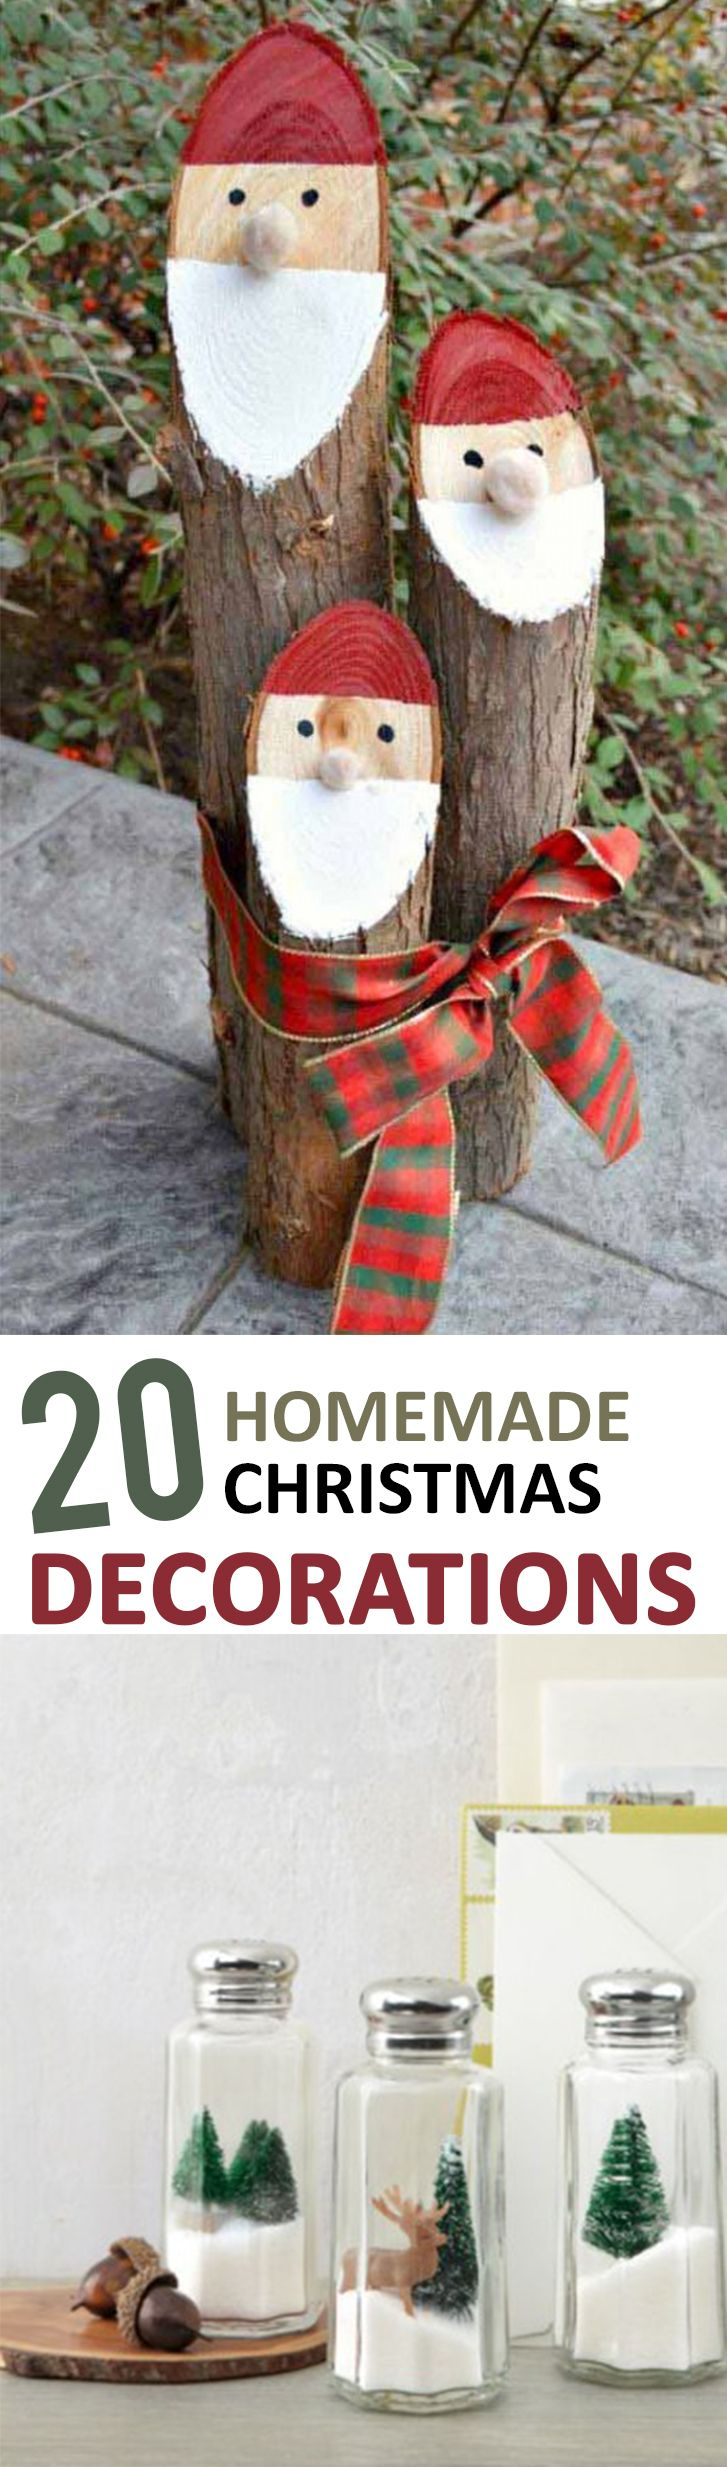 Pinterest Christmas Ideas And Crafts Part - 43: 20 Homemade Christmas Decorations